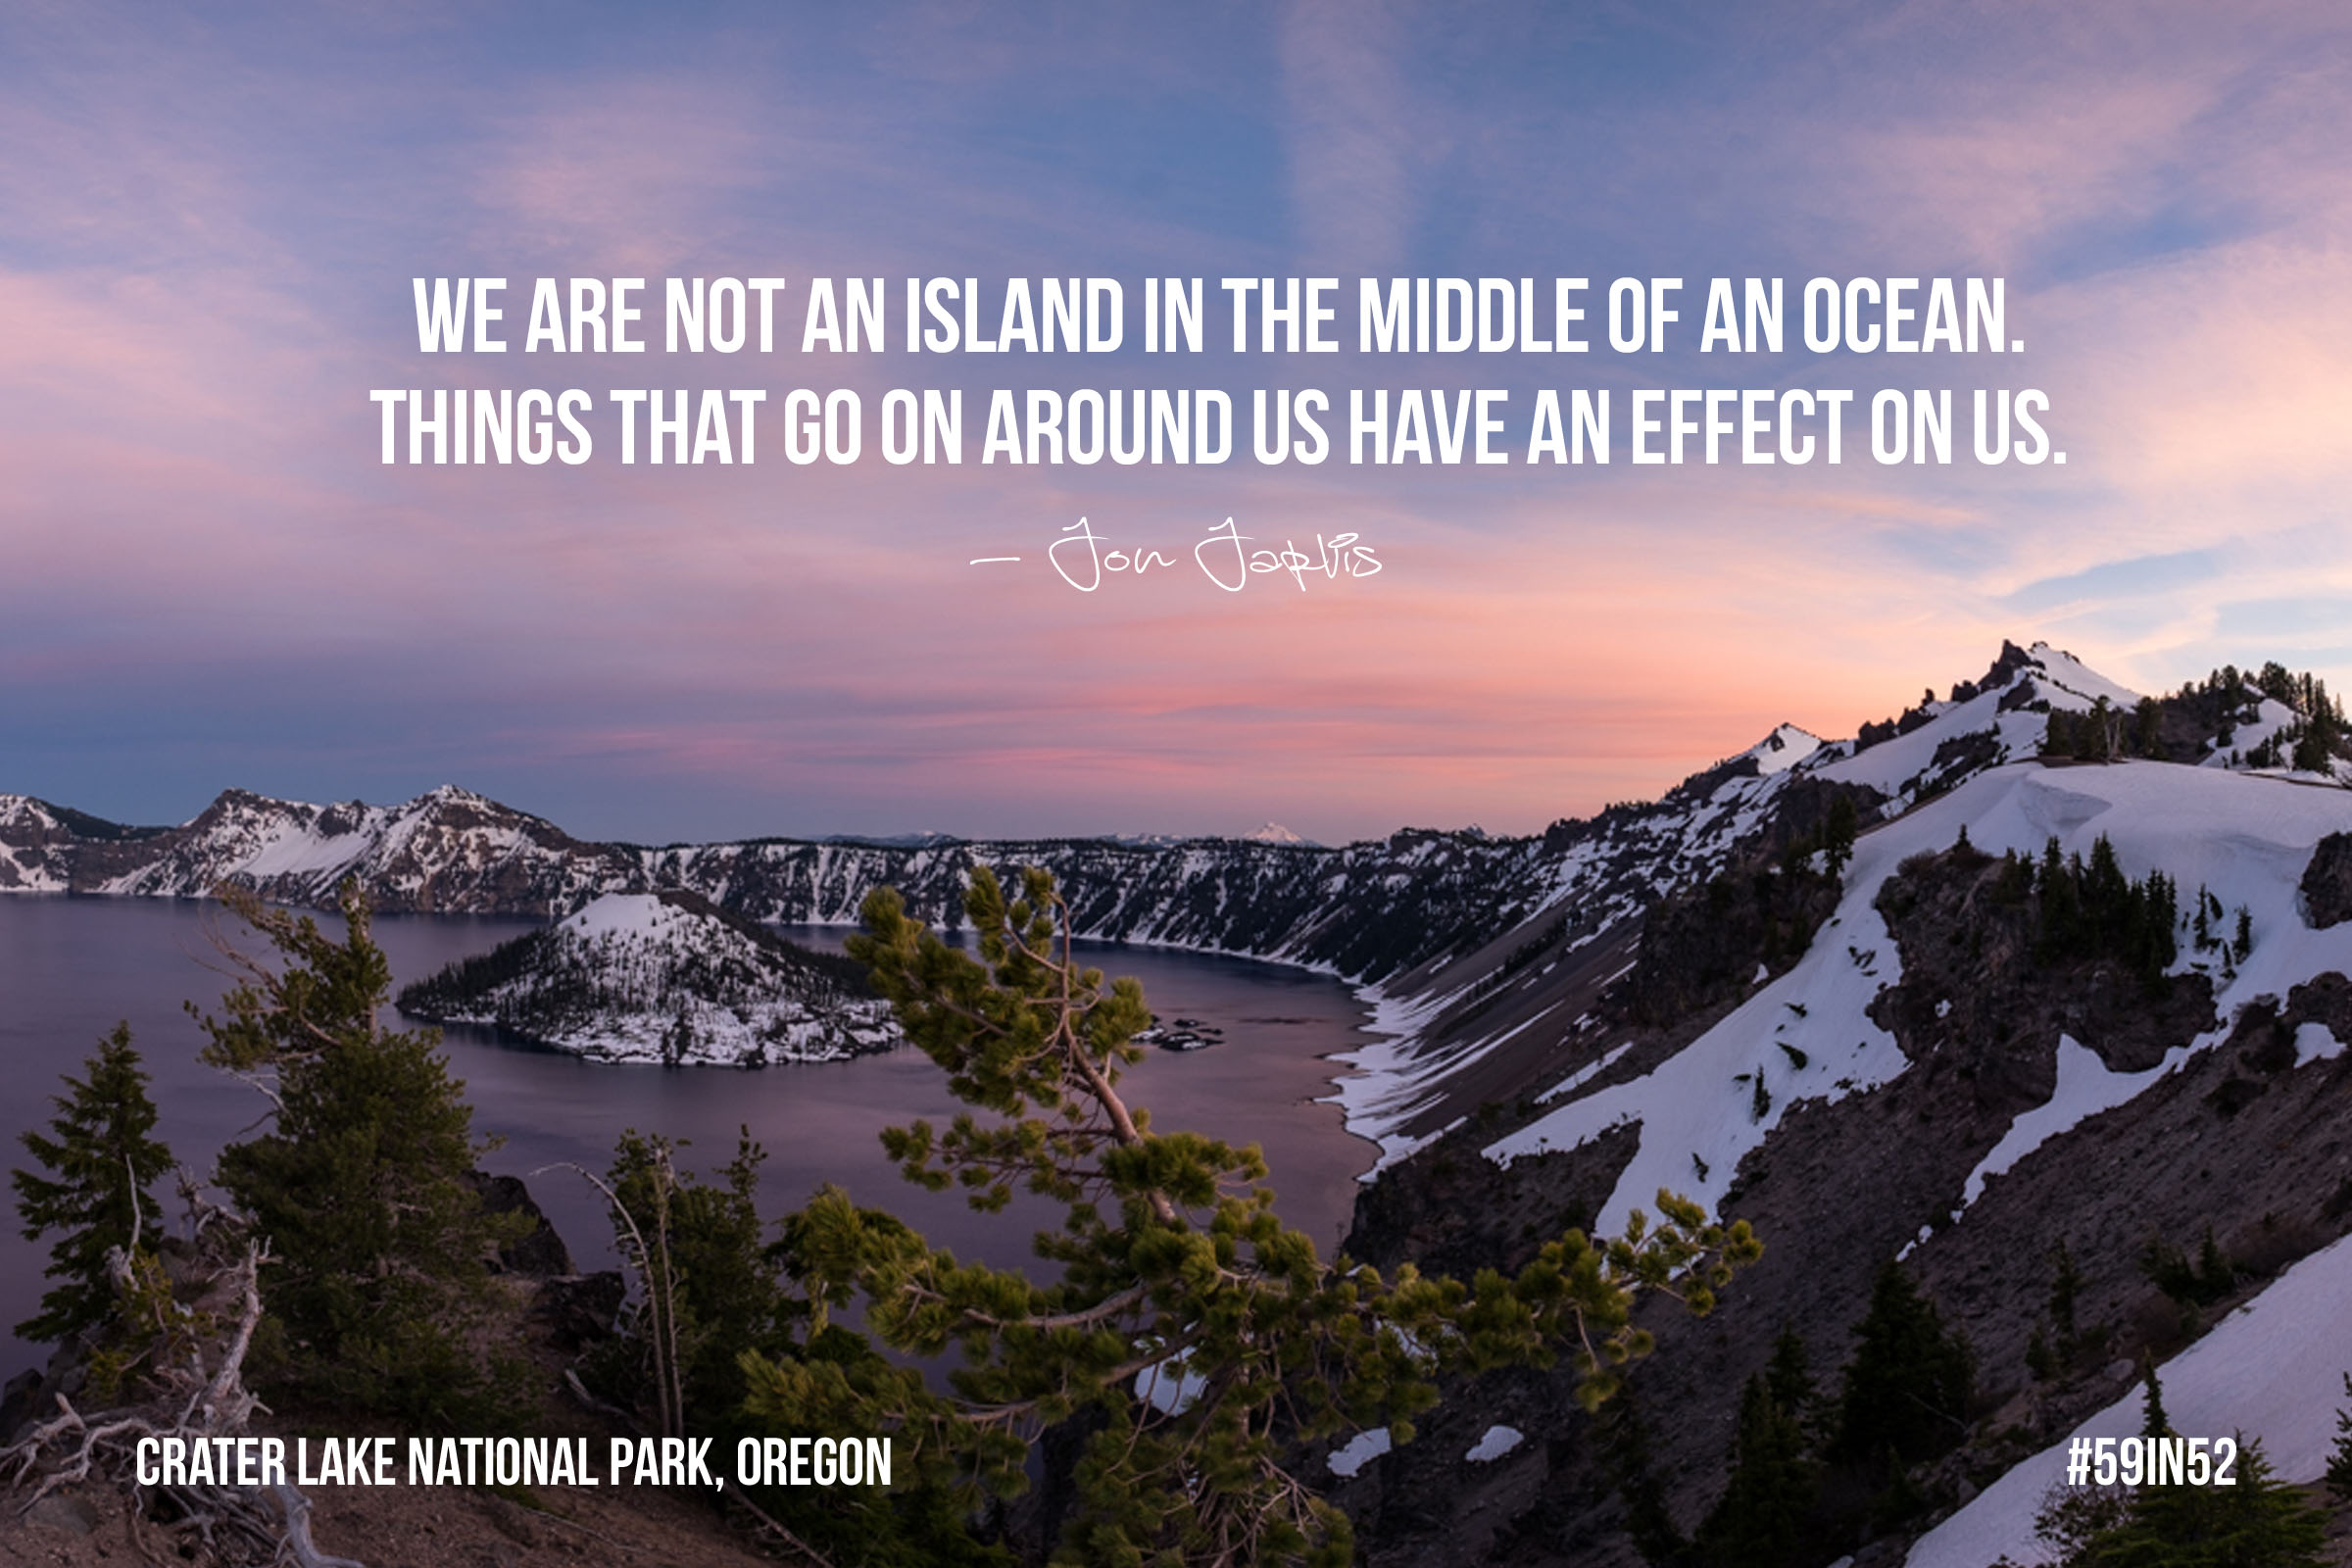 """We are not an island in the middle of the ocean. Things that go on around us have an effect on us."" – Jon Jarvis"